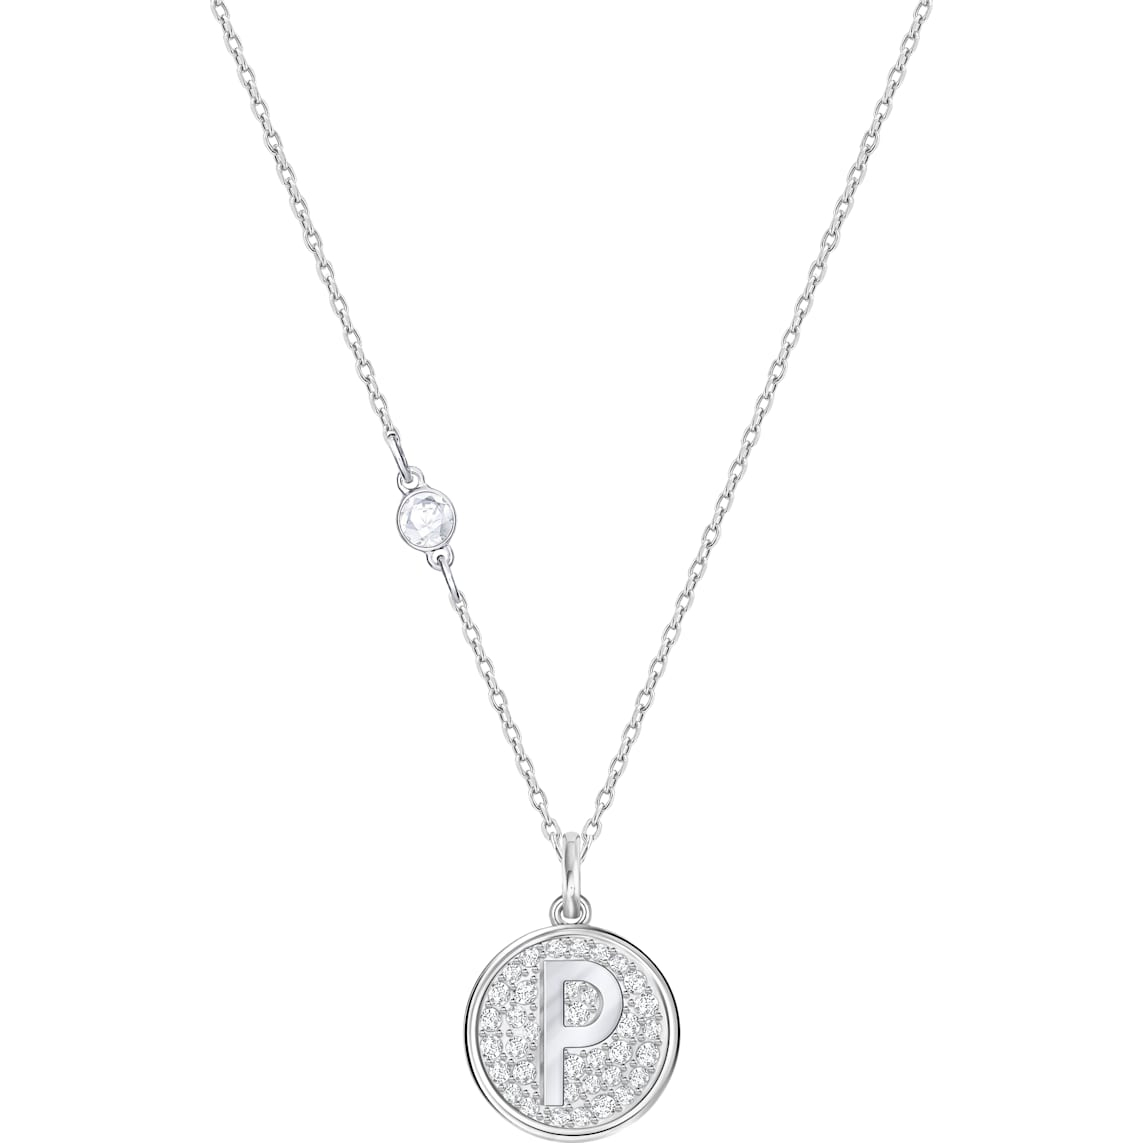 Letter P Pendant, White, Rhodium Plating Intended For Most Popular Letter P Alphabet Locket Element Necklaces (View 13 of 26)